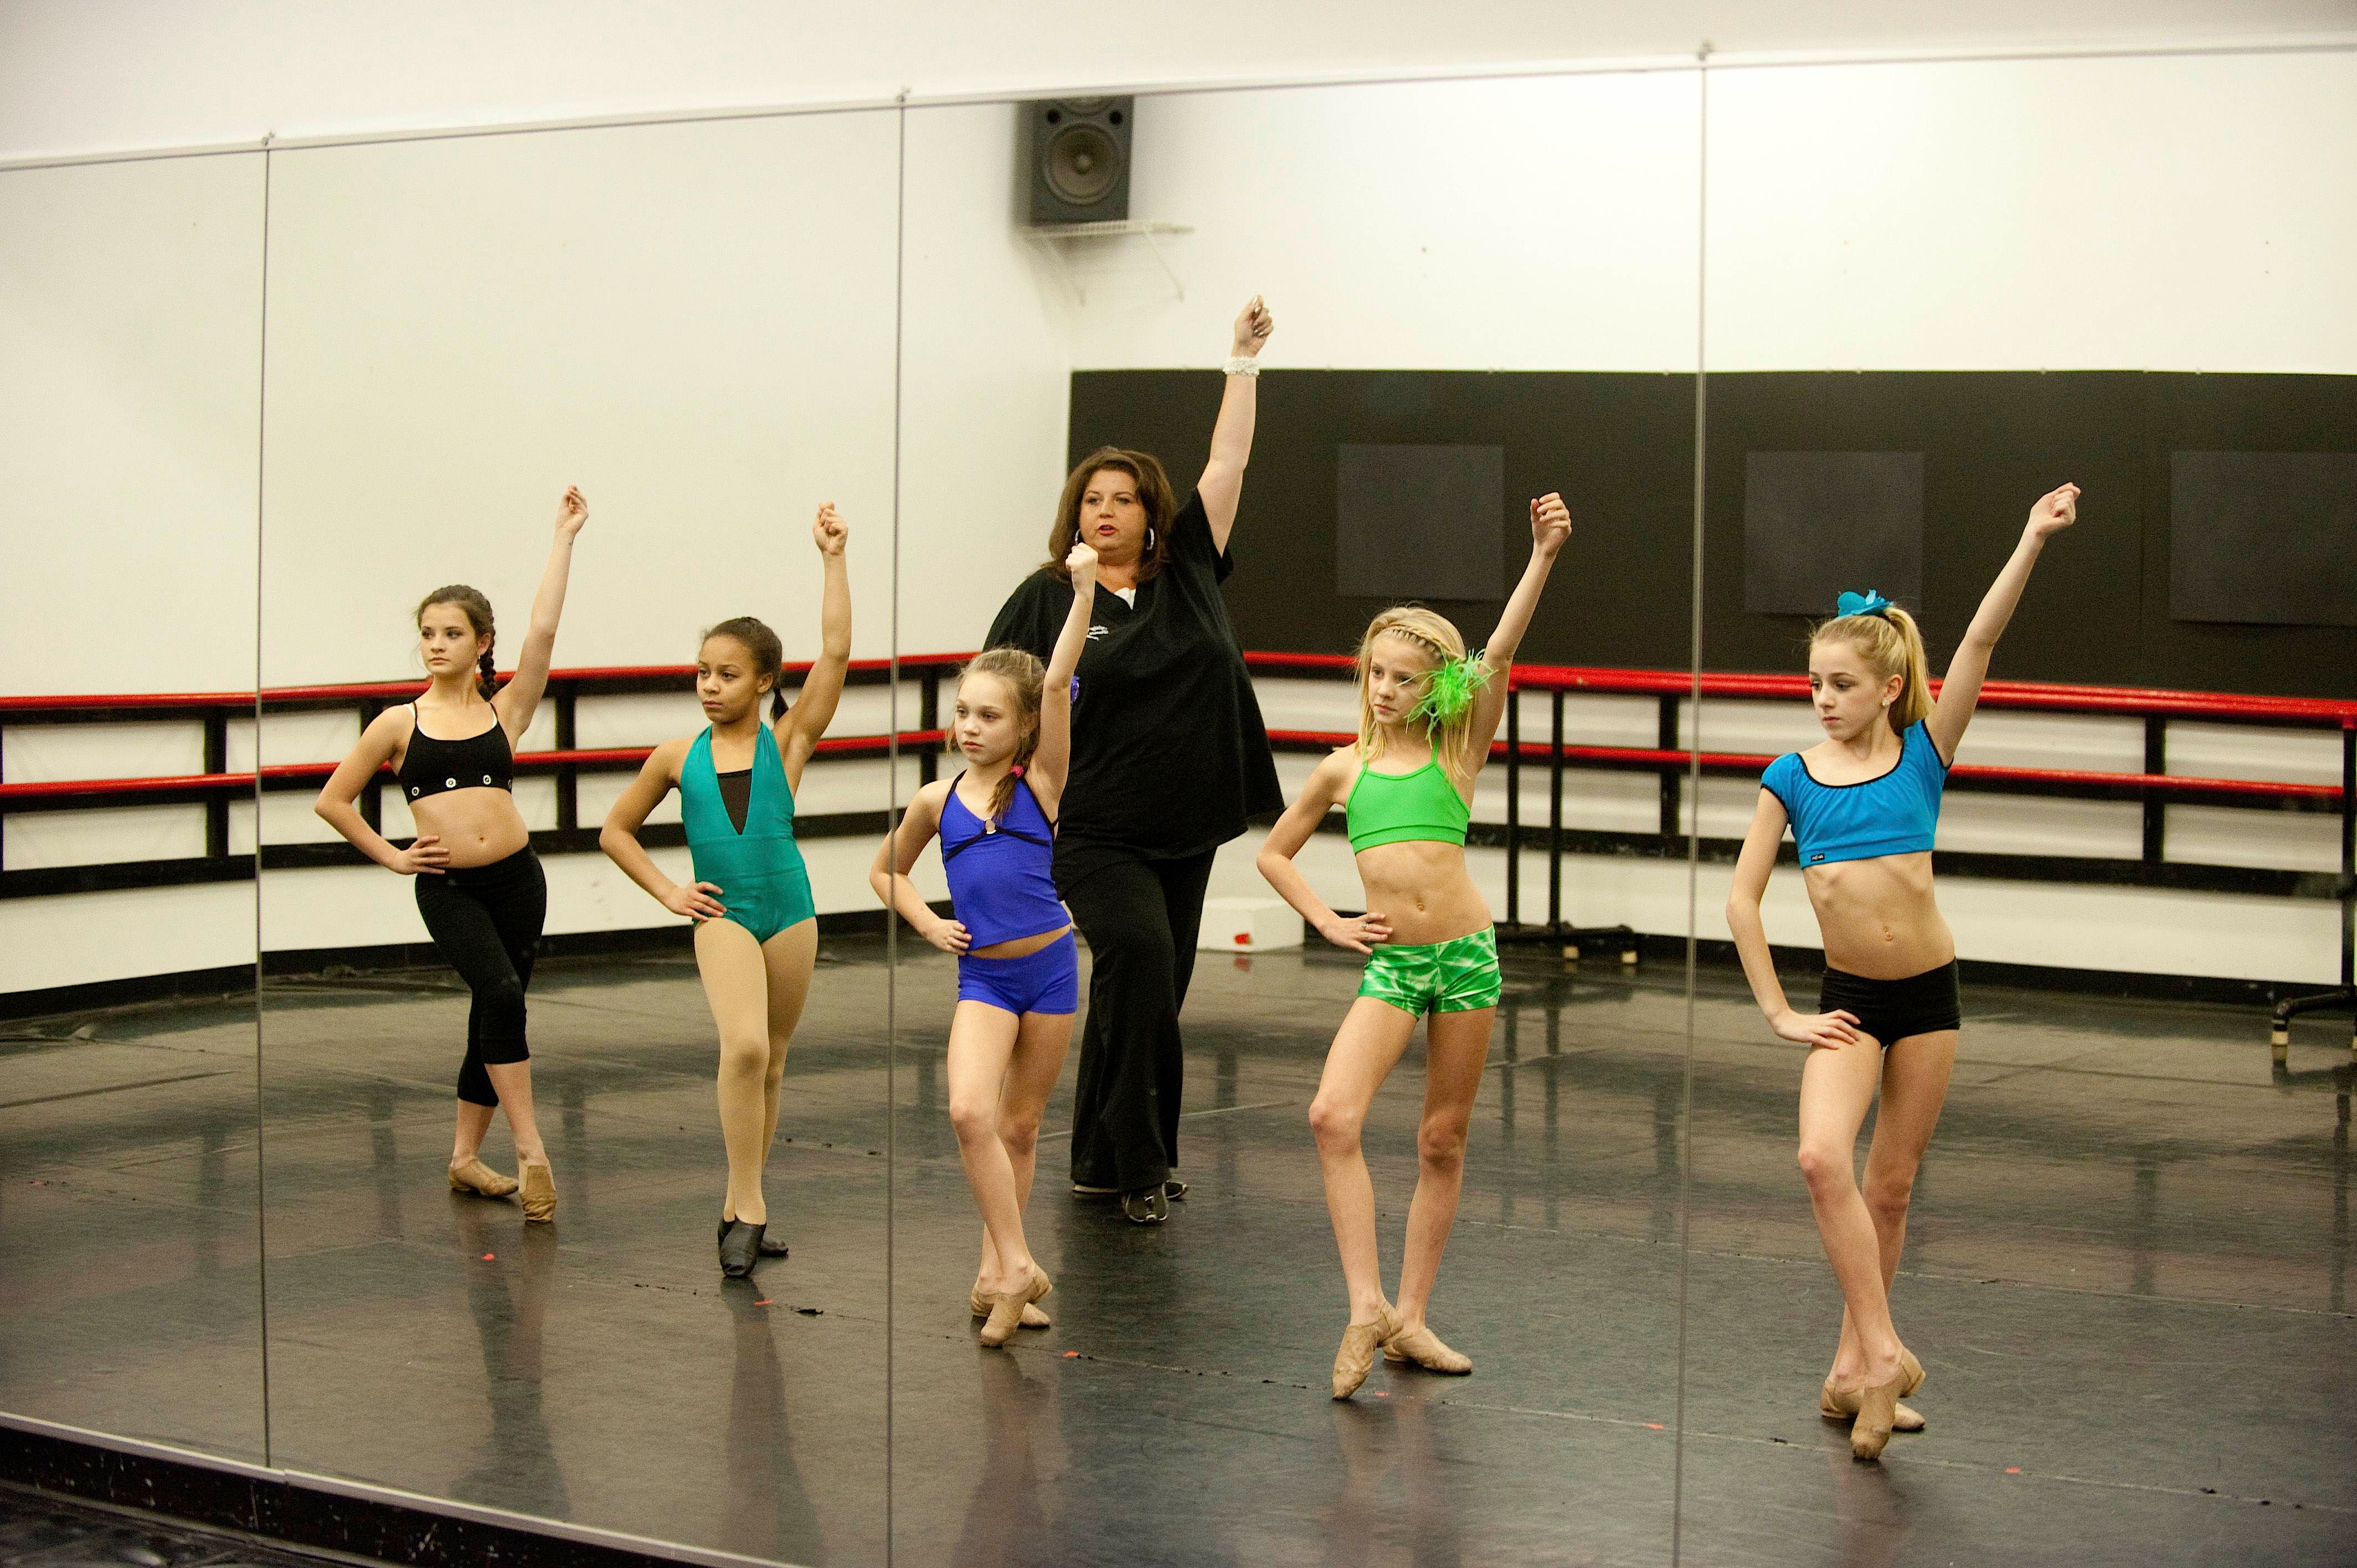 What S Worse Dance Moms Or Toddlers And Tiaras